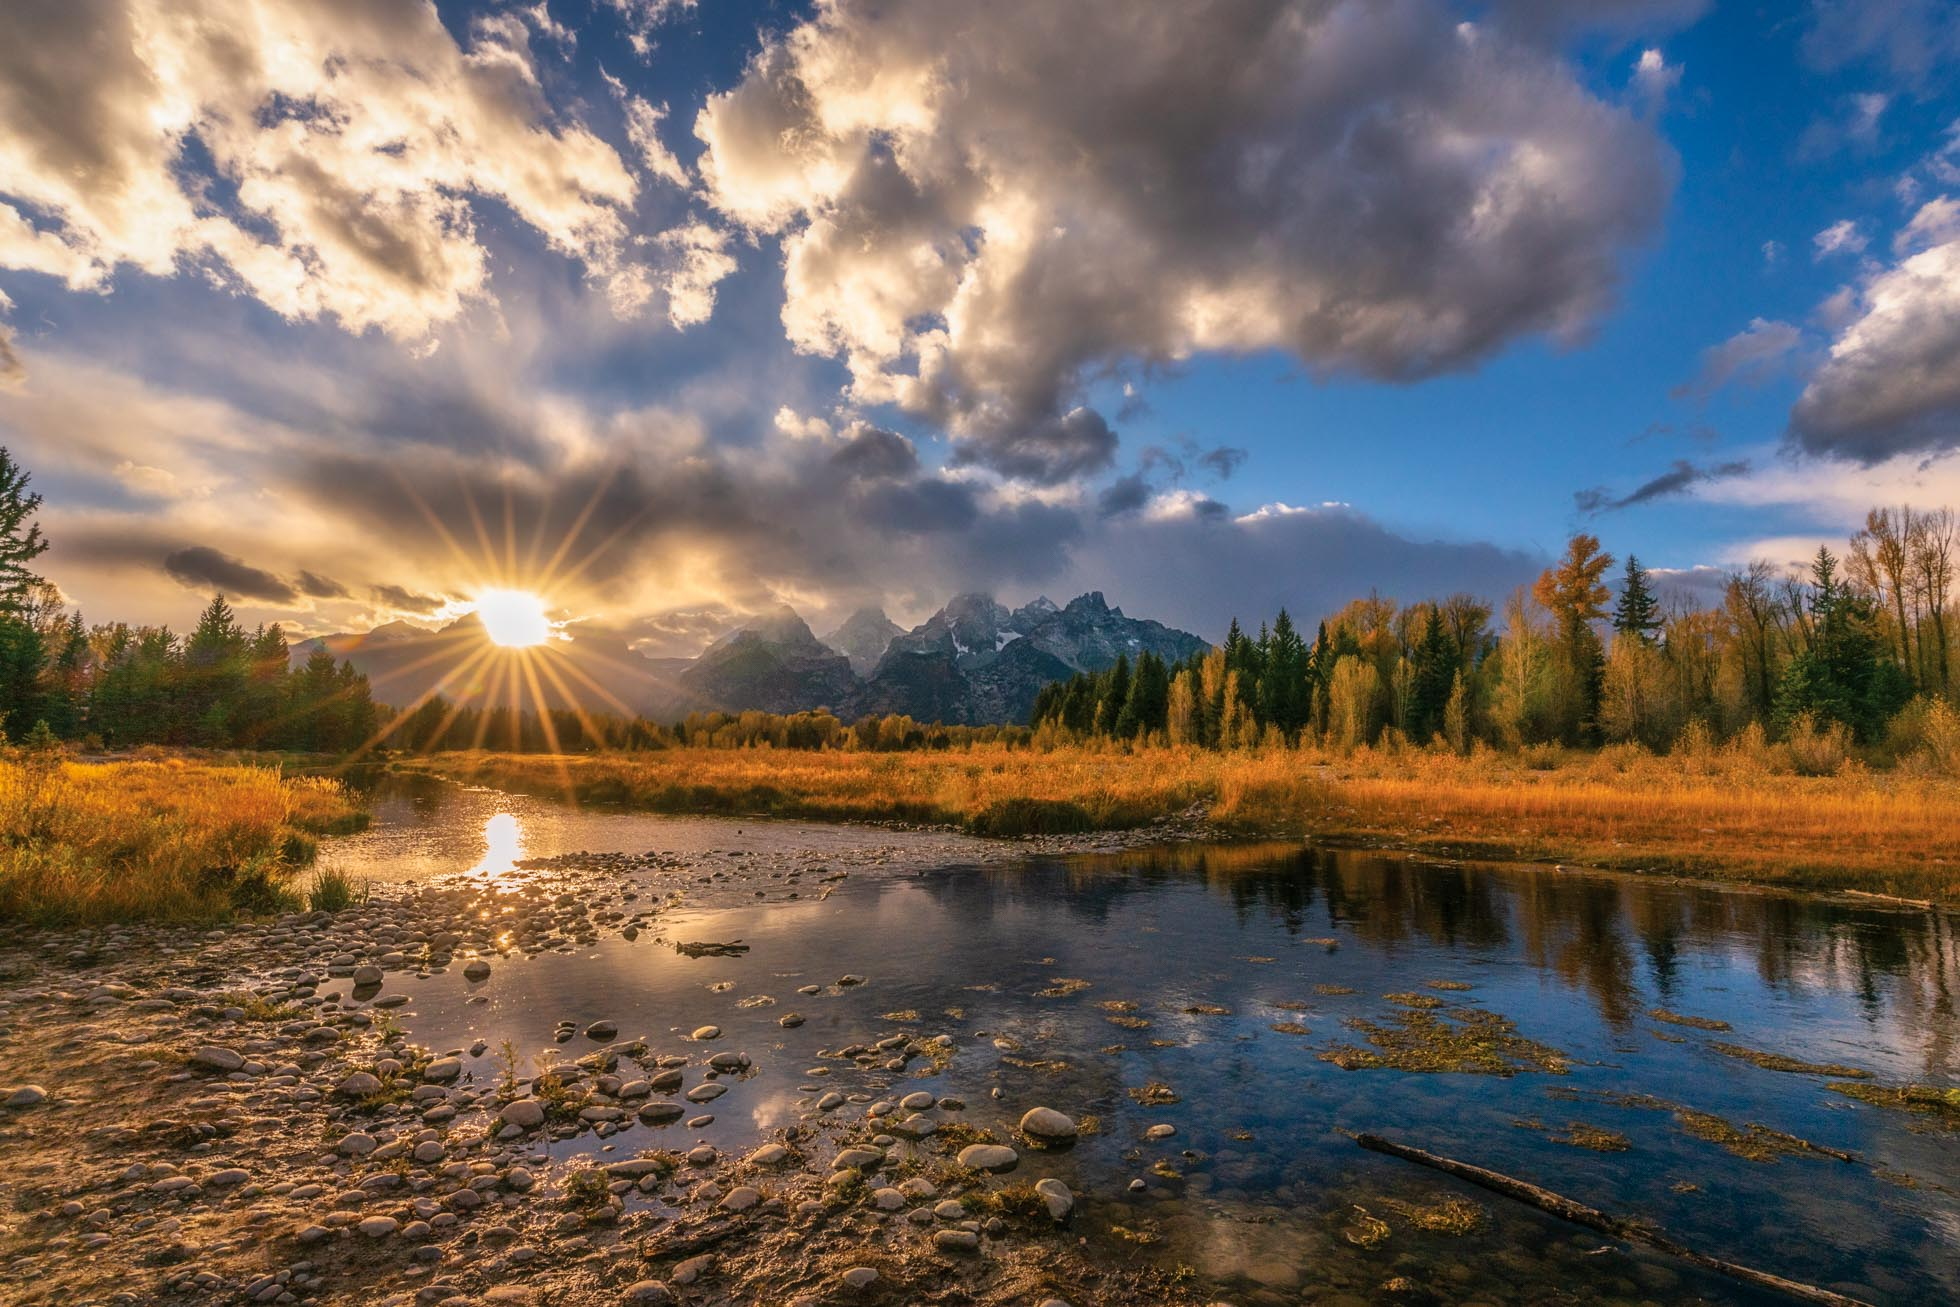 16mm captures the entire sunset scene in the Tetons, including a vivid and distinct sunburst.